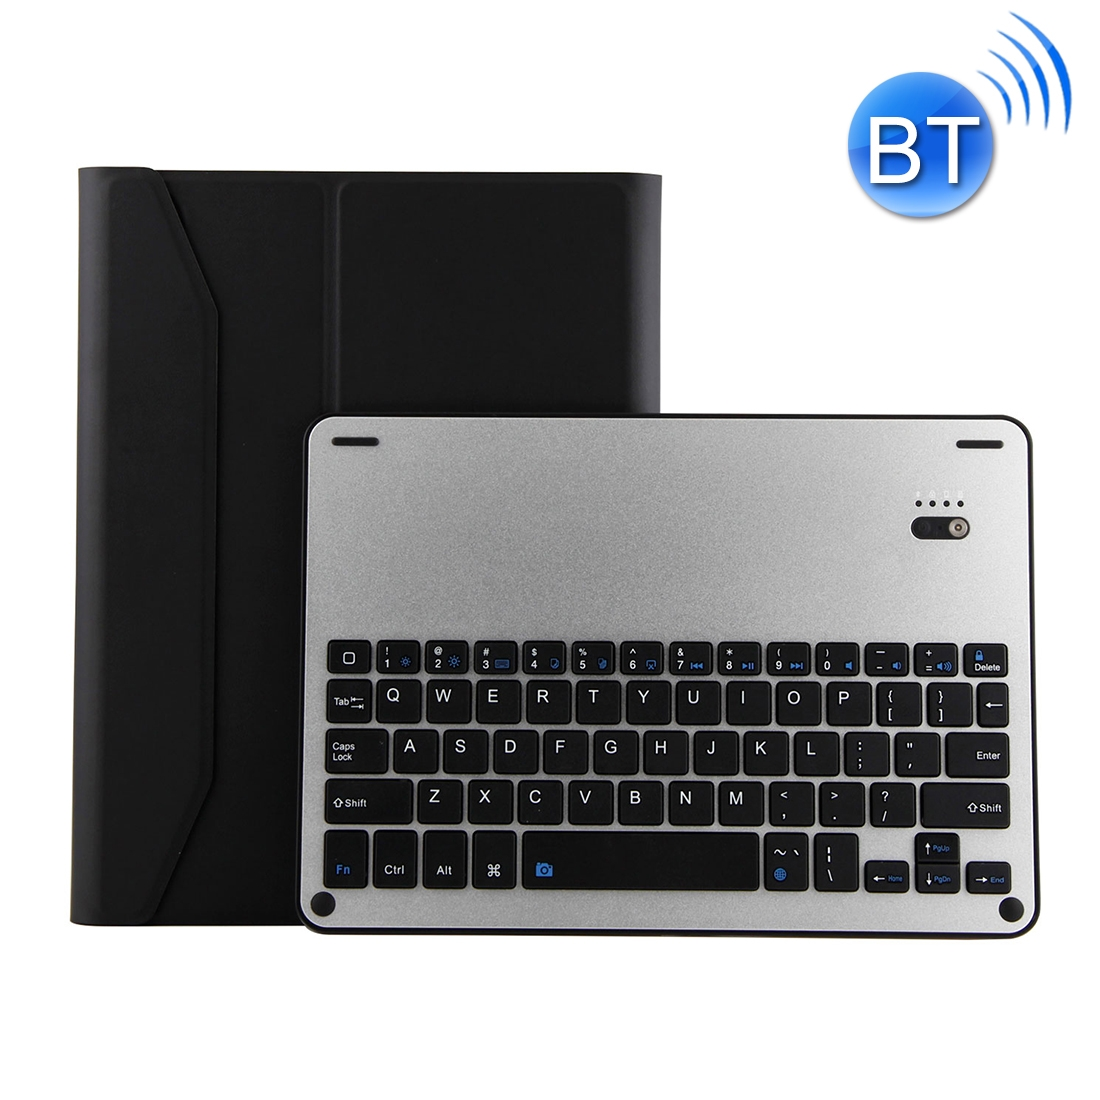 iPad Air 2 Case With Keyboard With Leather Case For iPad Air/Air 2/Pro 9.7 inch  (Black Silver)